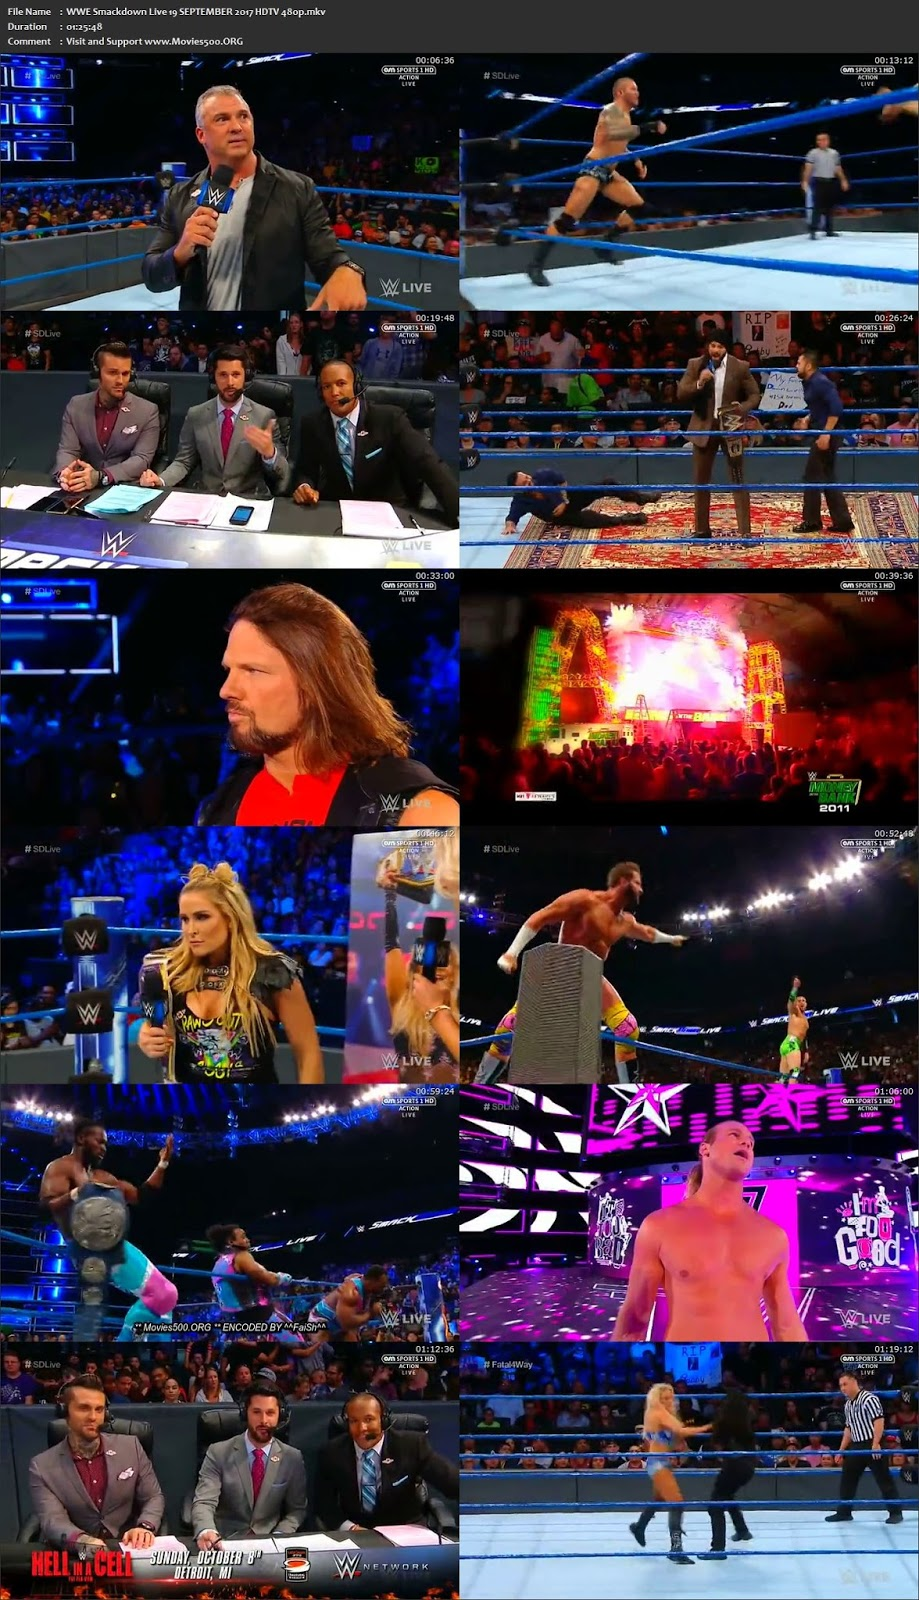 WWE Smackdown Live 19 SEPTEMBER 2017 HDTV 355MB Download 480p at createkits.com